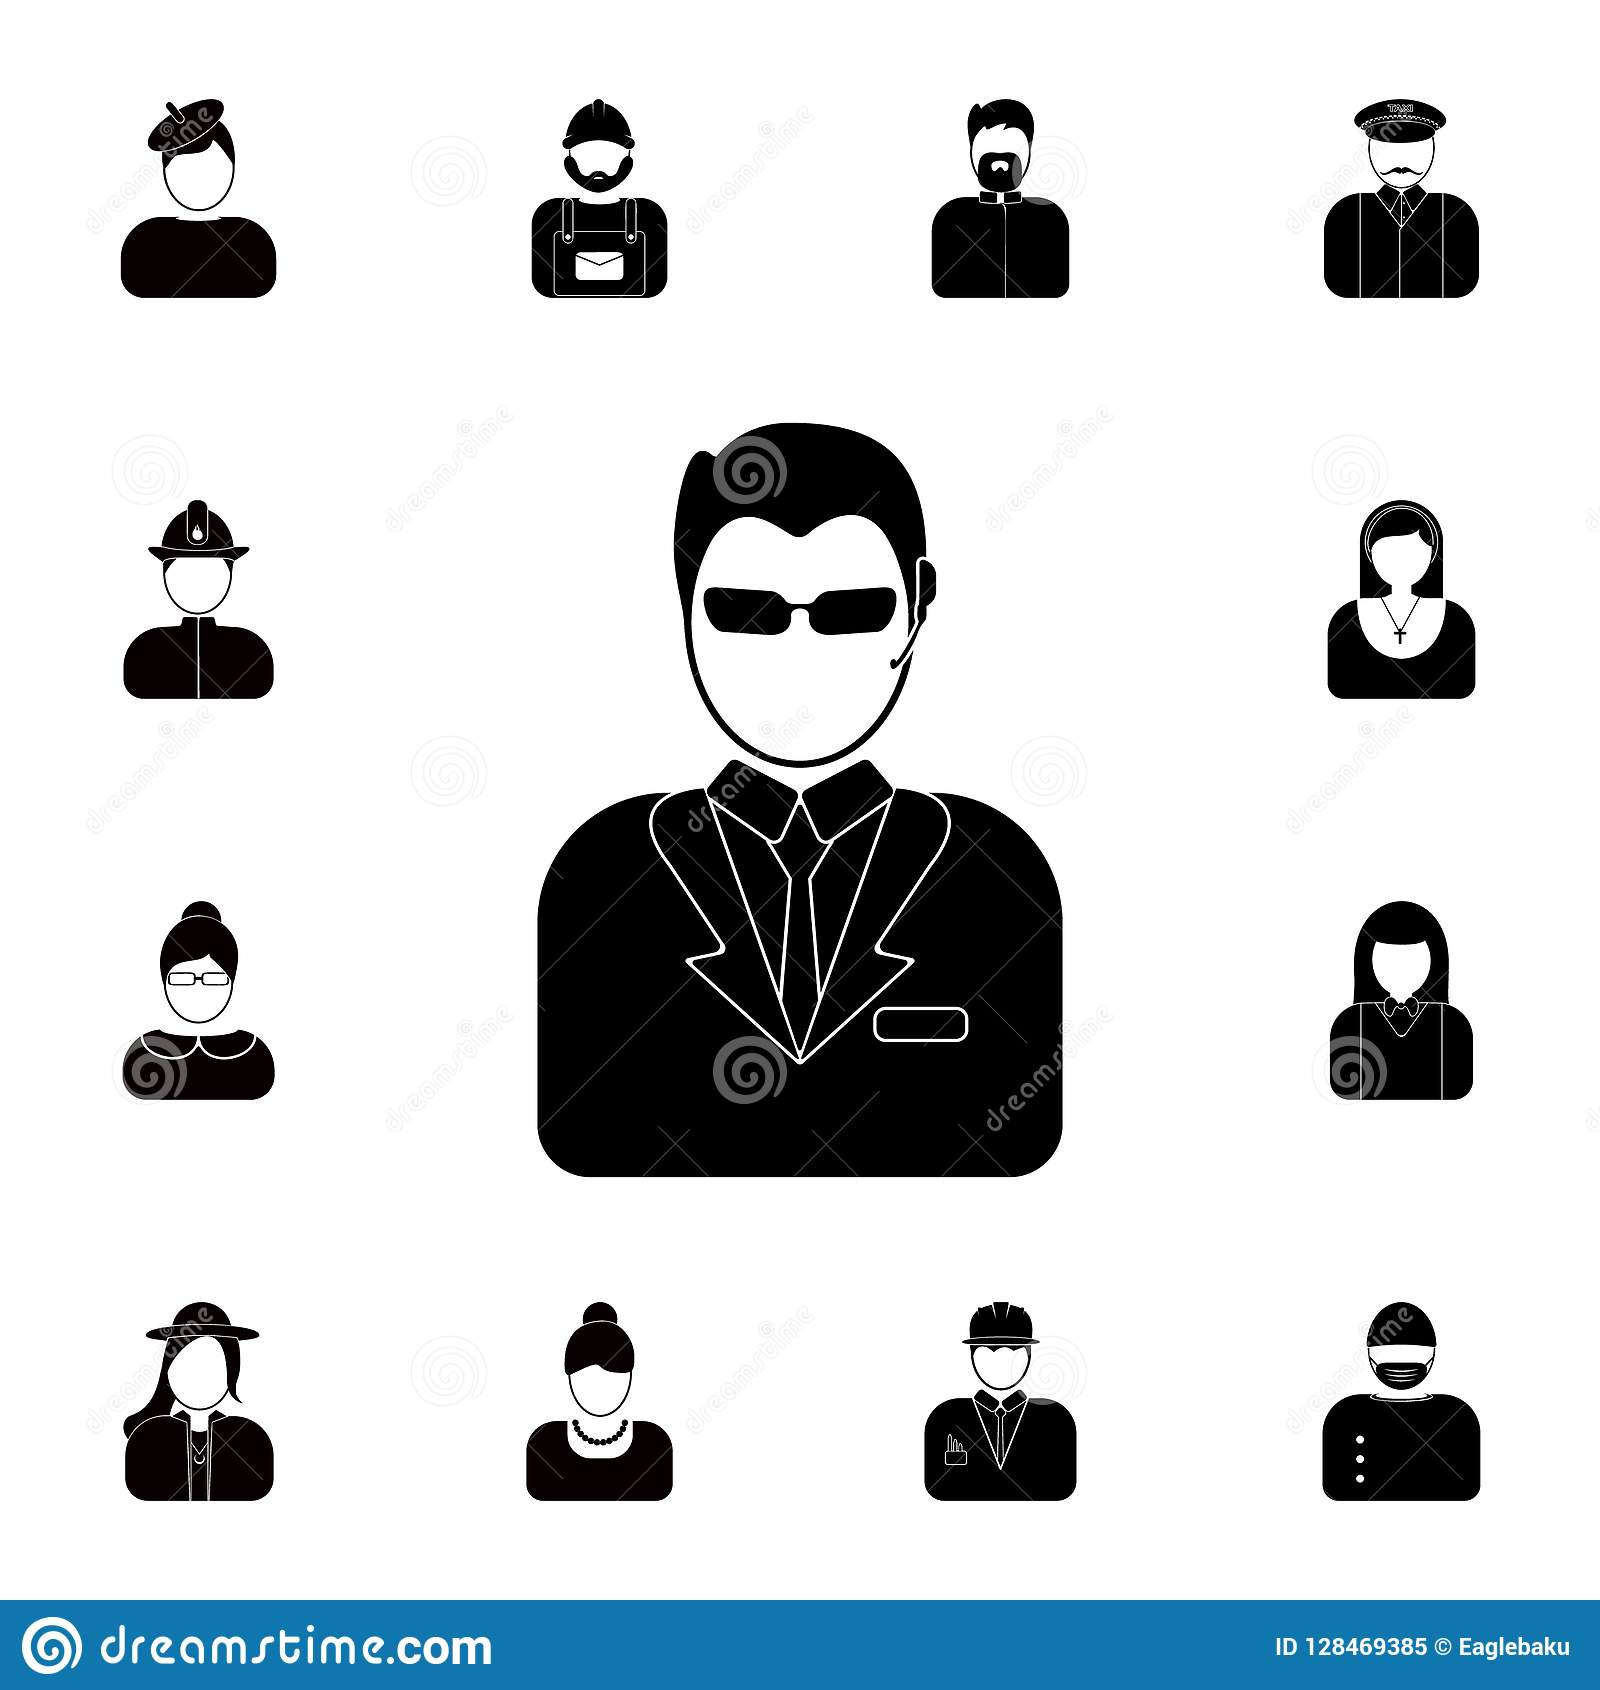 avatar of the bodyguard icon. Detailed set of avatars of profession icons. Premium quality graphic design icon. One of the collect